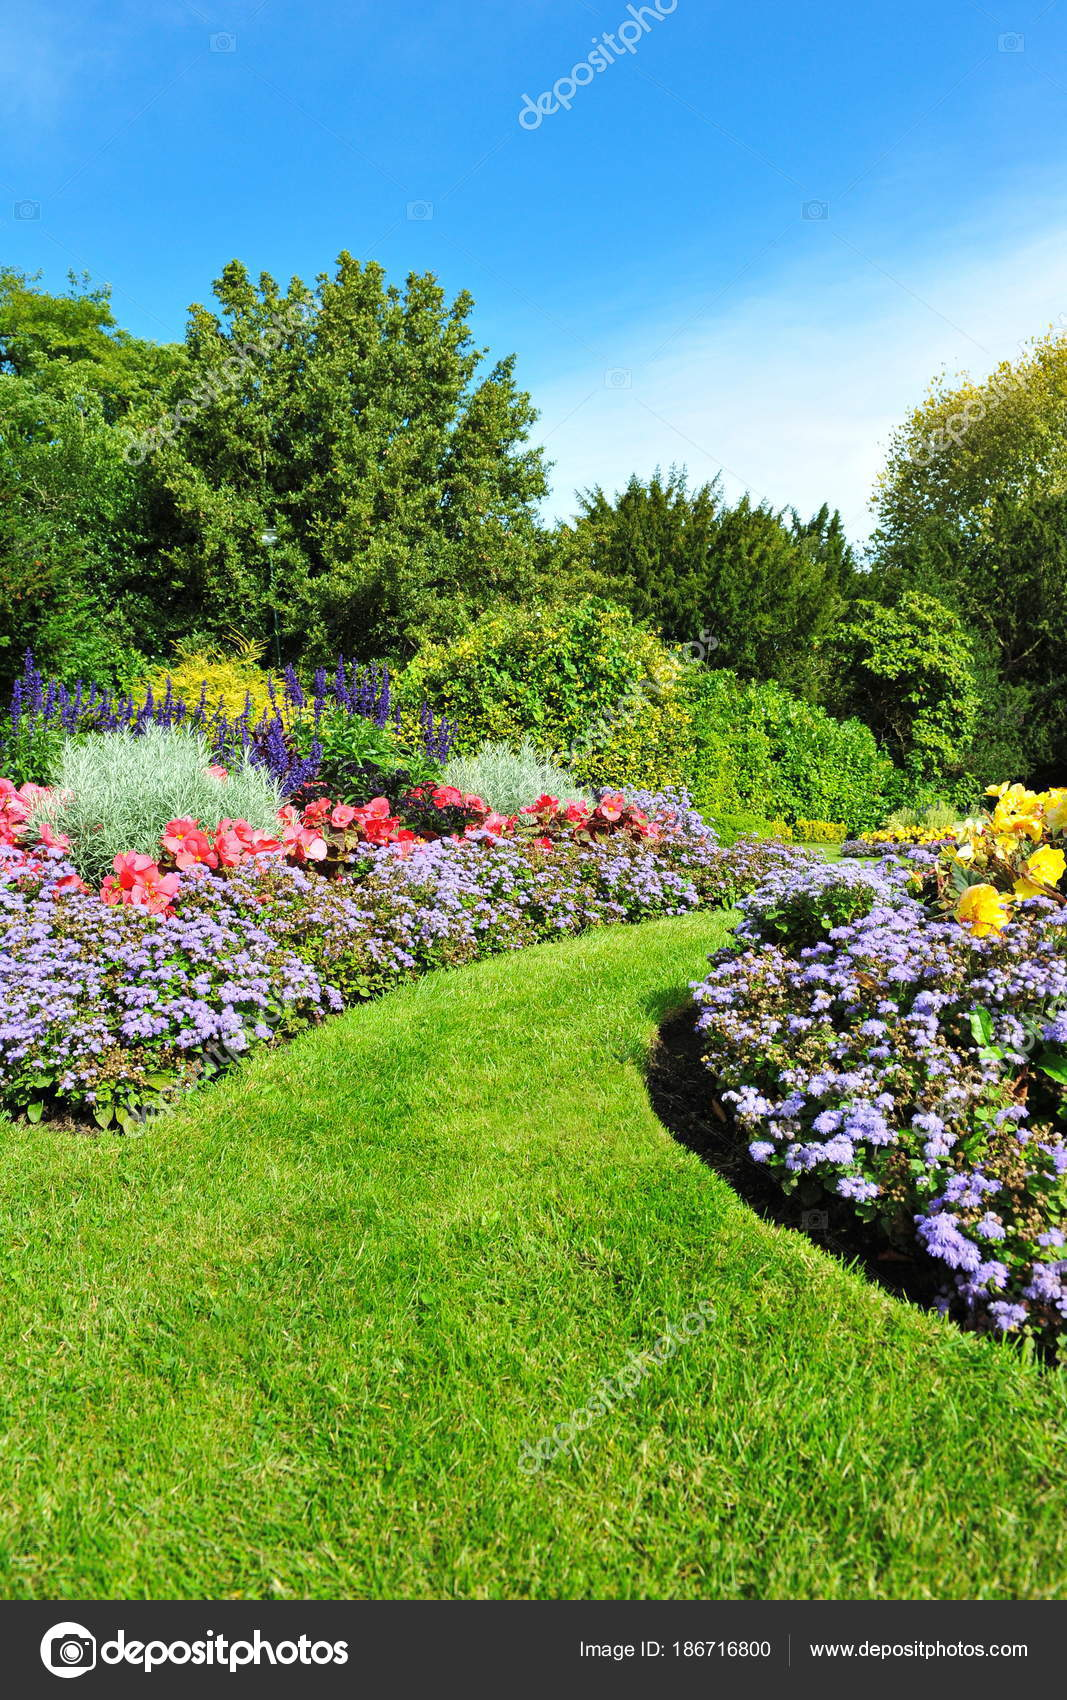 Decorated Innocent Garden Bright Green Plants Colourful Flowers Stock Photo C 1000words 186716800